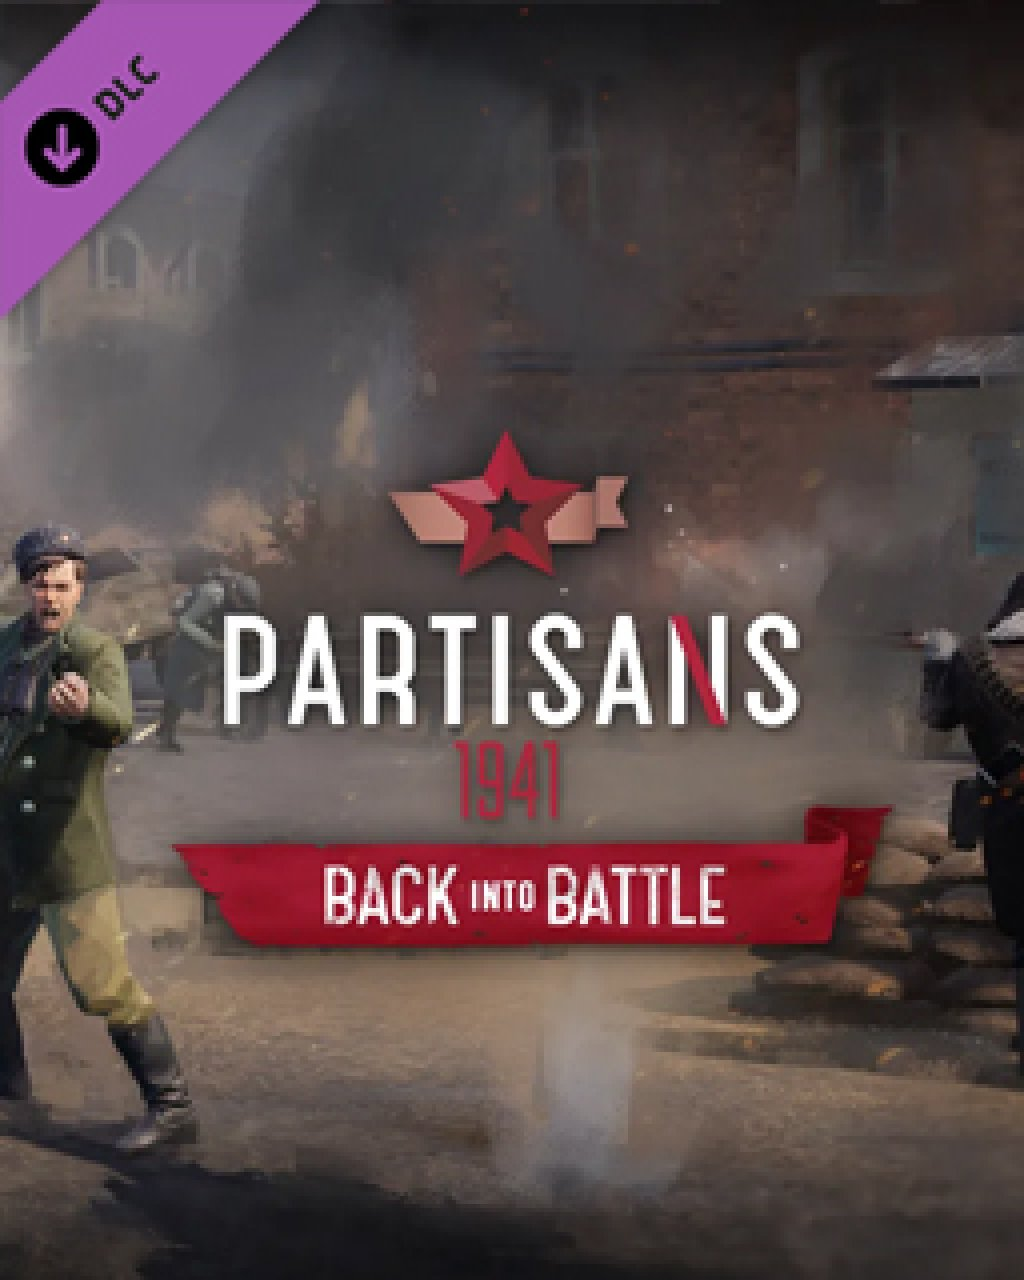 Partisans 1941 Back Into Battle